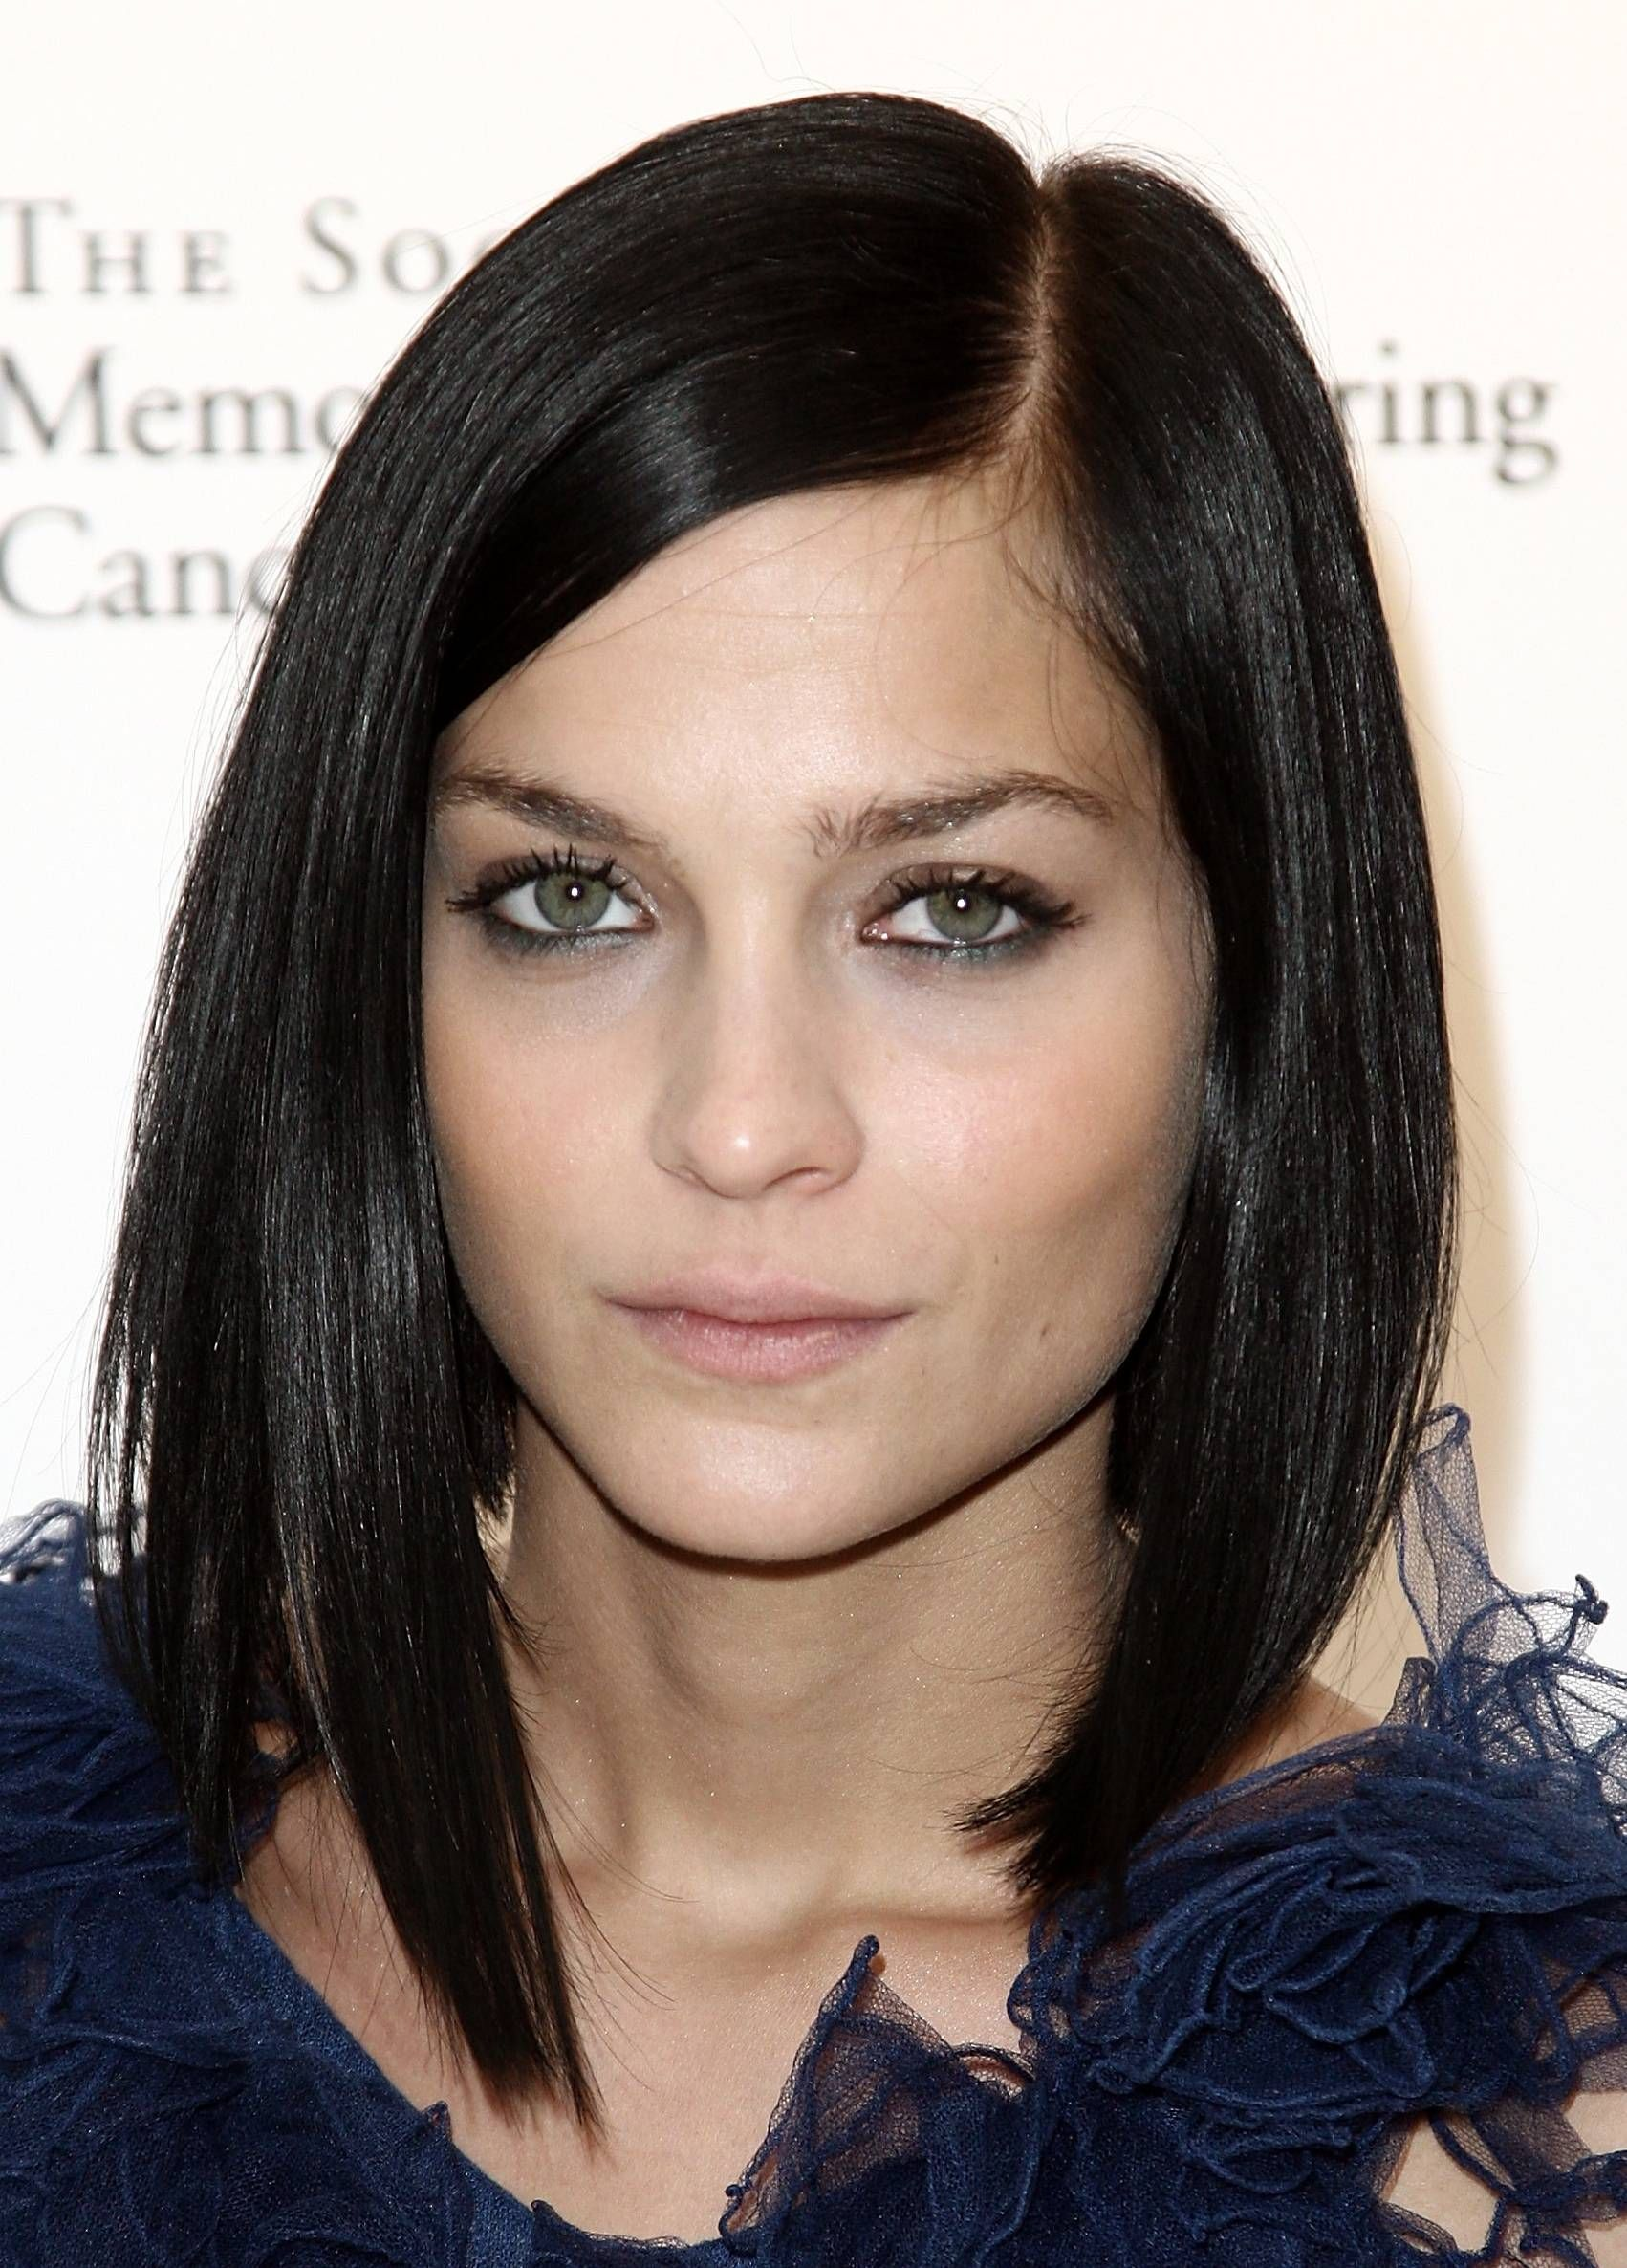 Edgy hairstyles for women hair cuts medium length hairstyles and